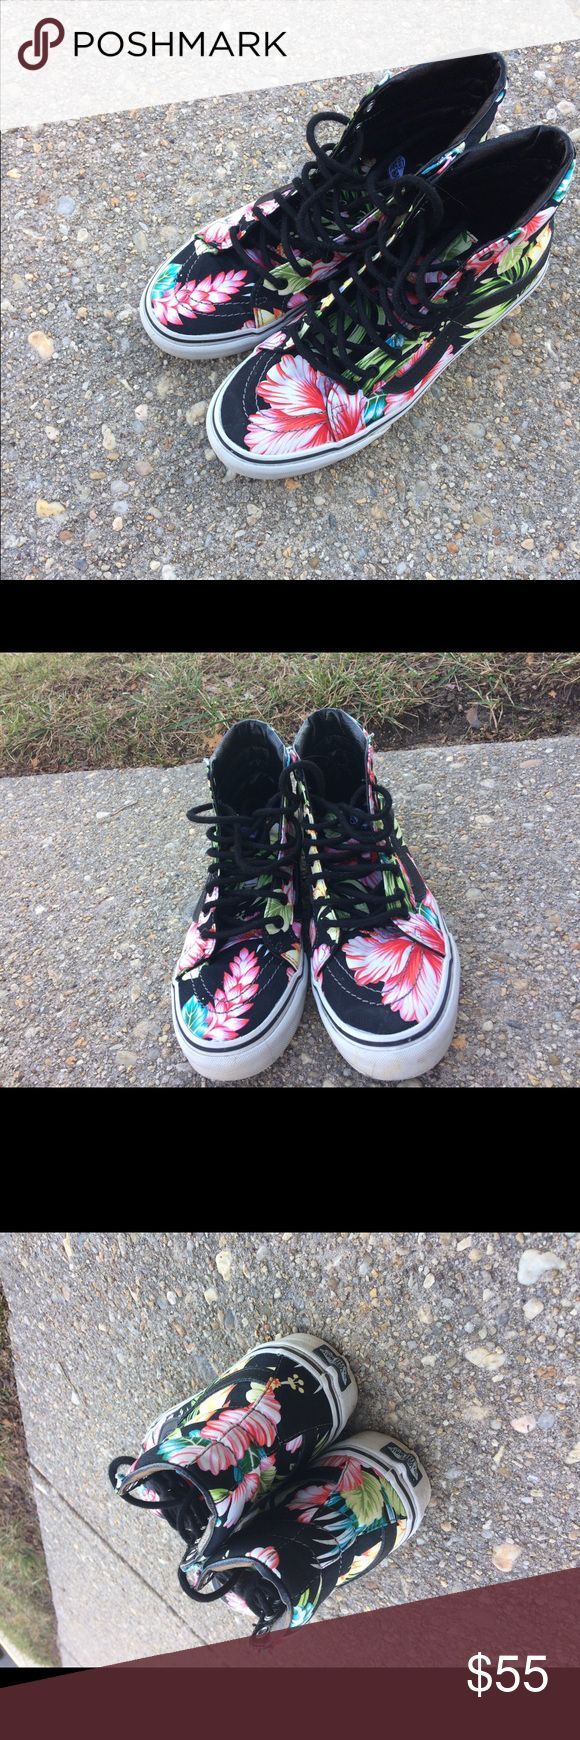 Floral high sk8 vans Good condition. Barely worn size 8 in women Vans Shoes Sneakers